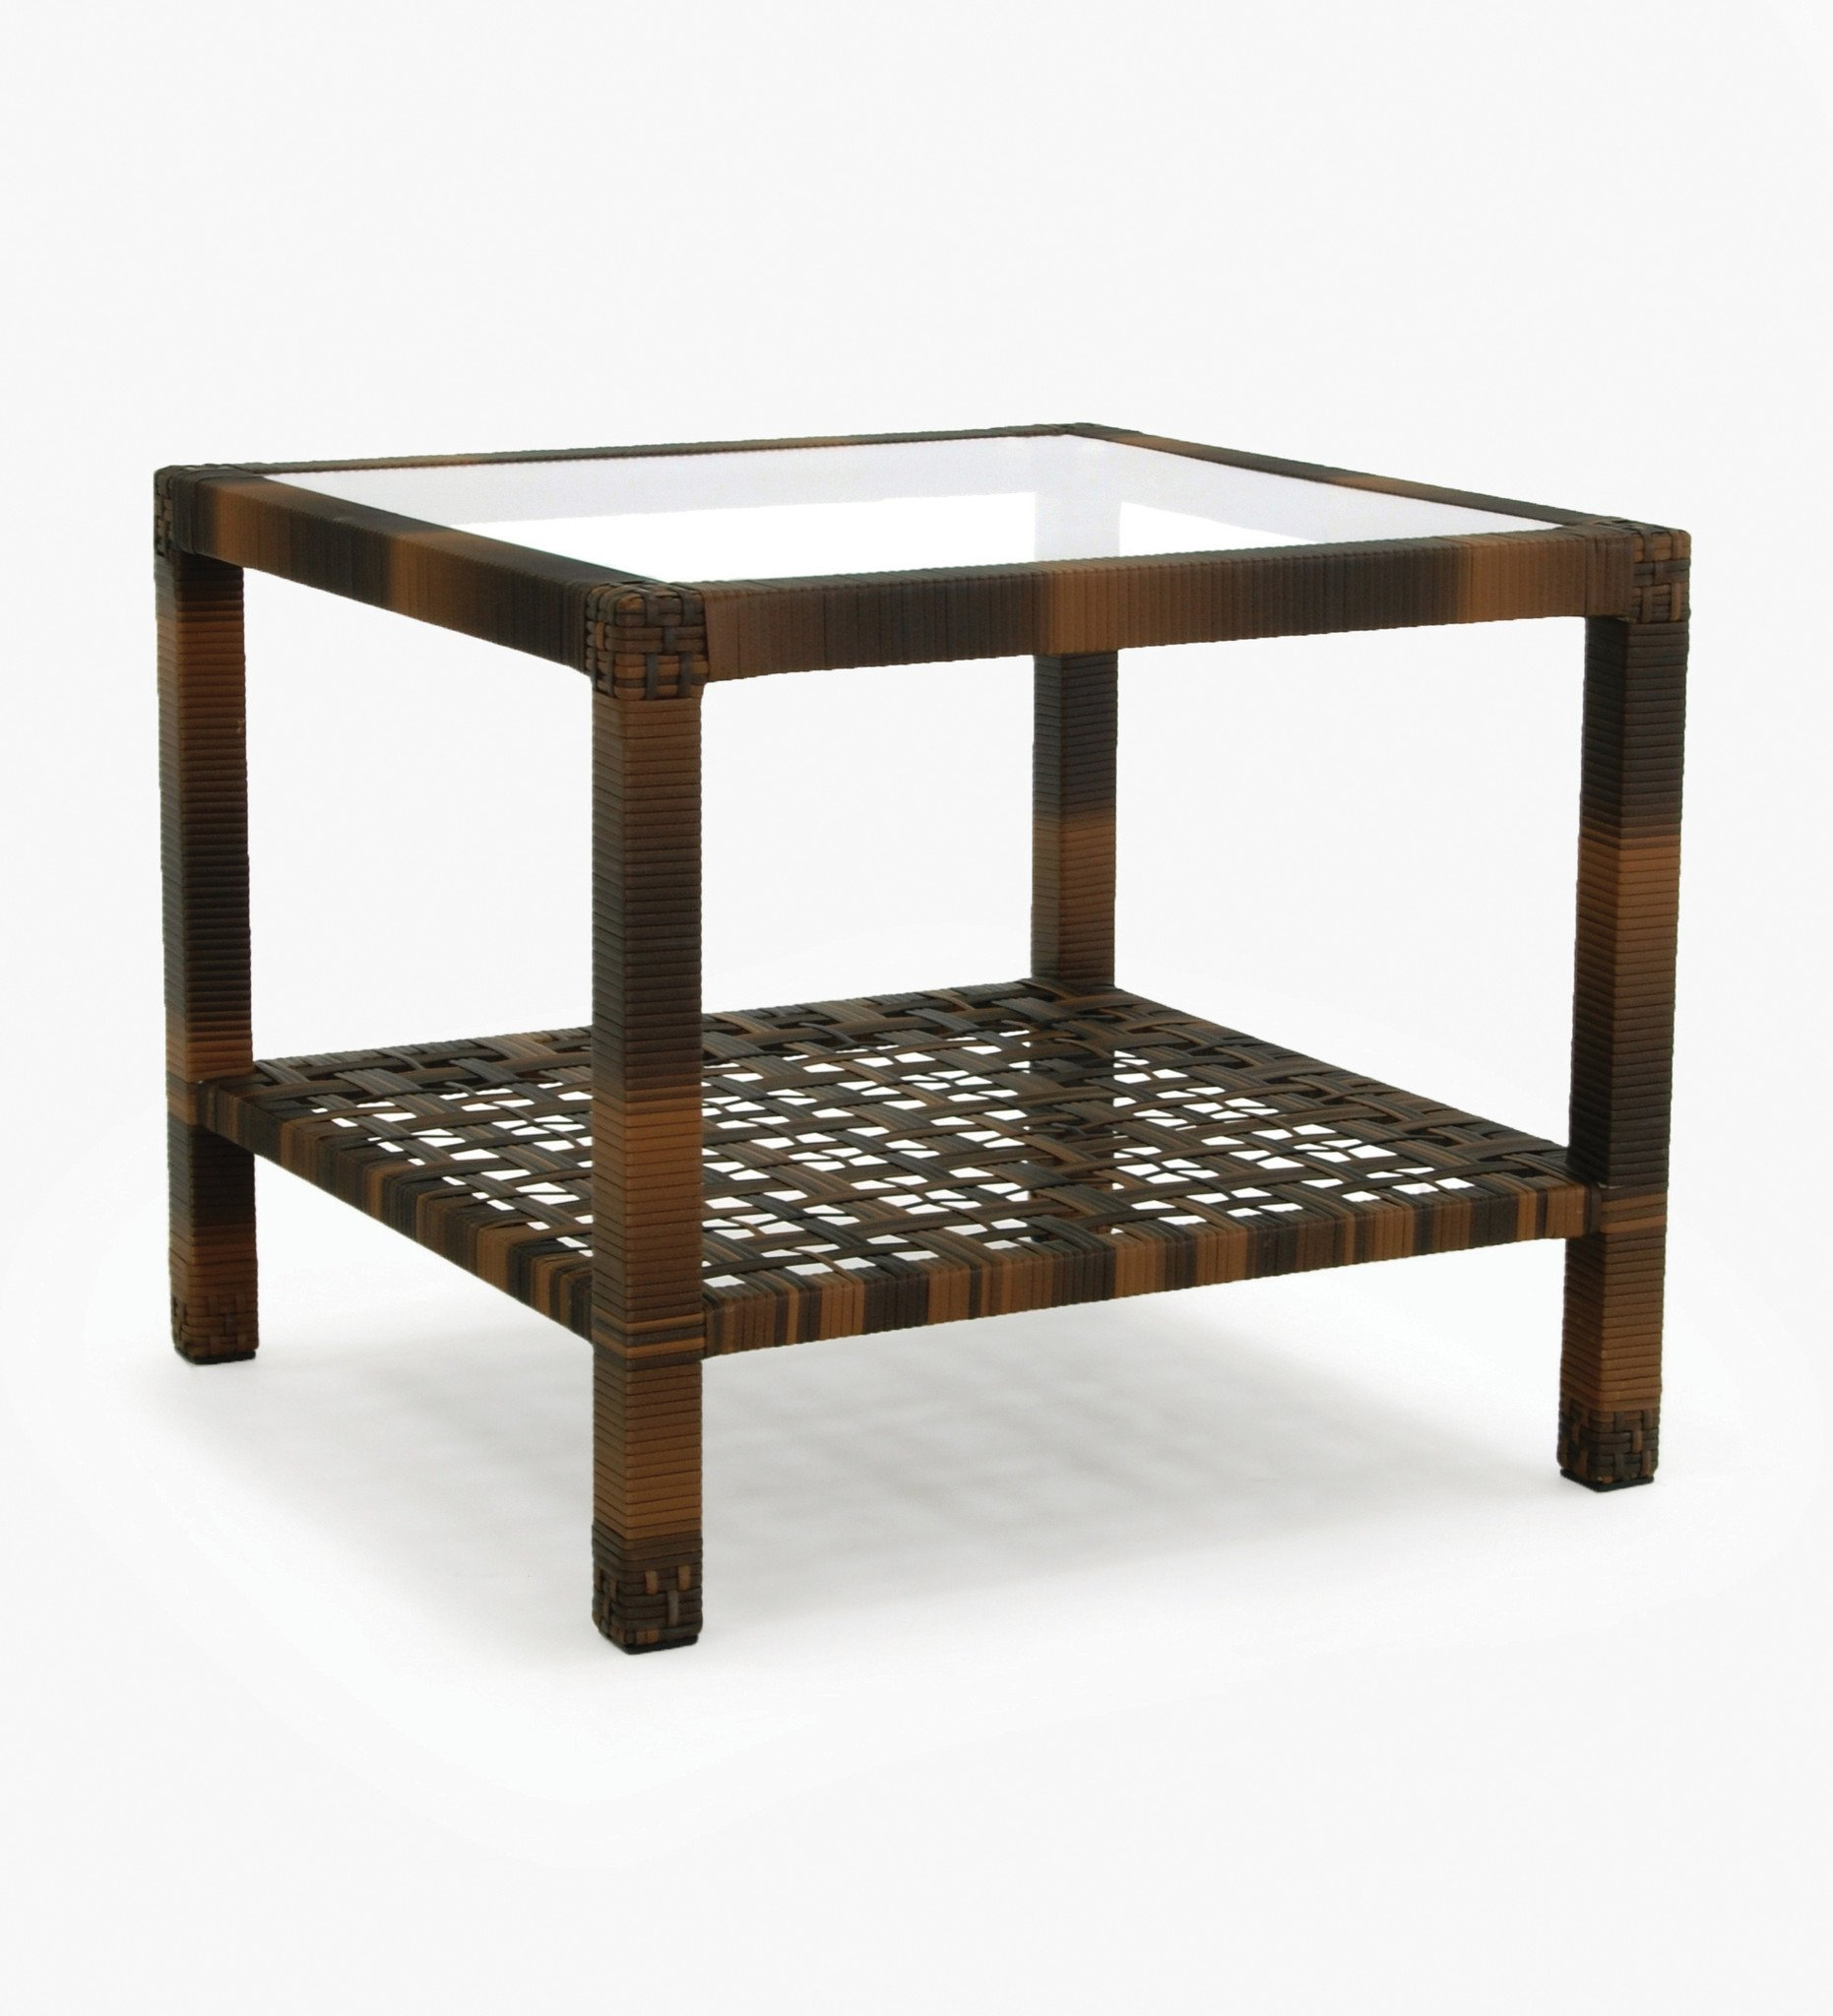 oasiq astor end table glass top web wood copper powell furniture dining sets ashley labor day hours white side drawer sauder soft modern chairs made from pallets nice leather